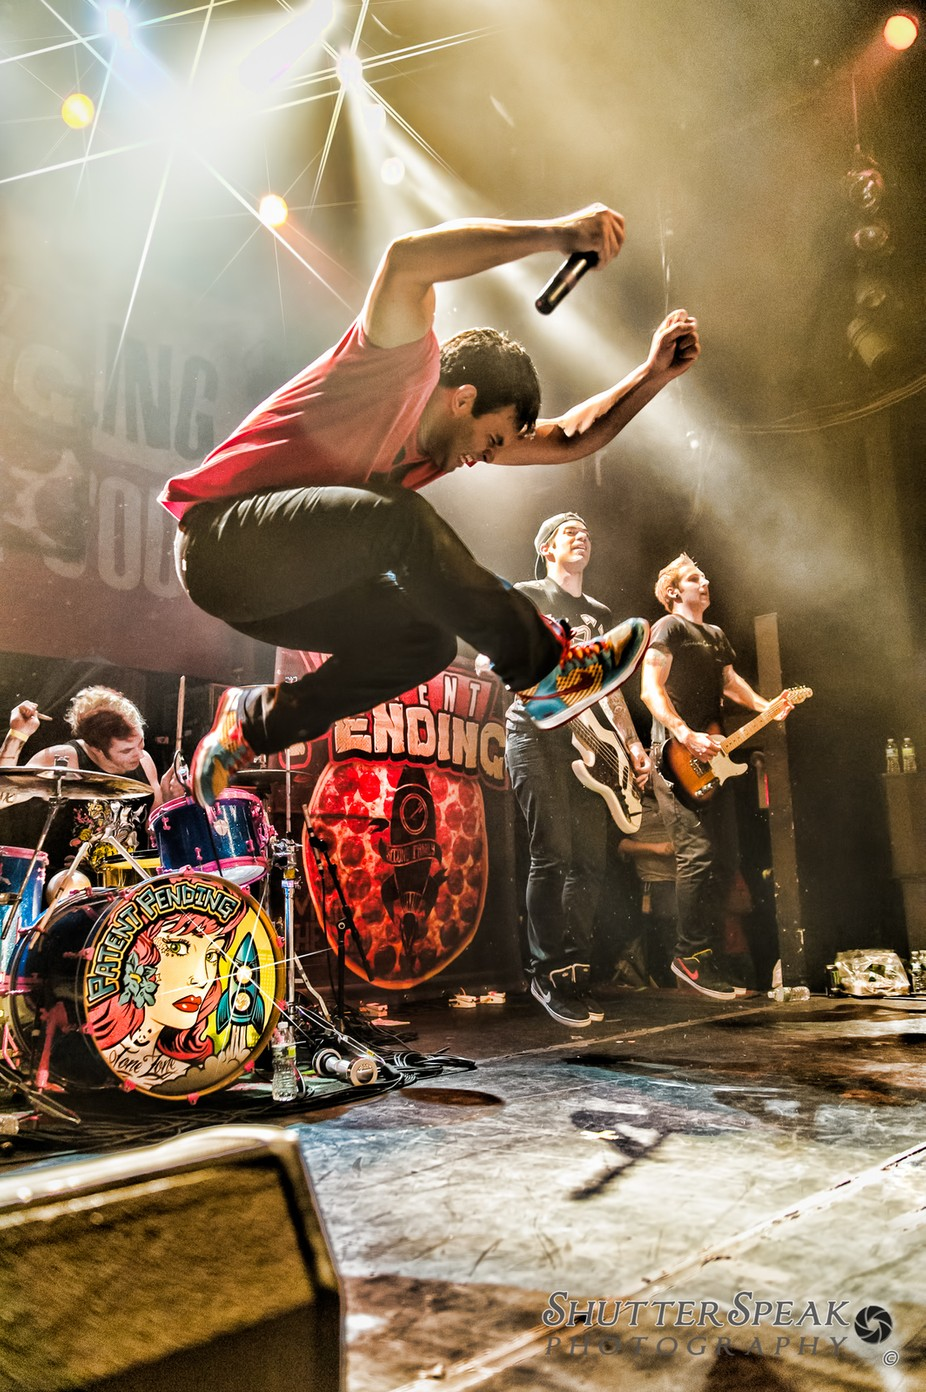 Patent Pending by ShutterSpeak - Music And Concerts Photo Contest